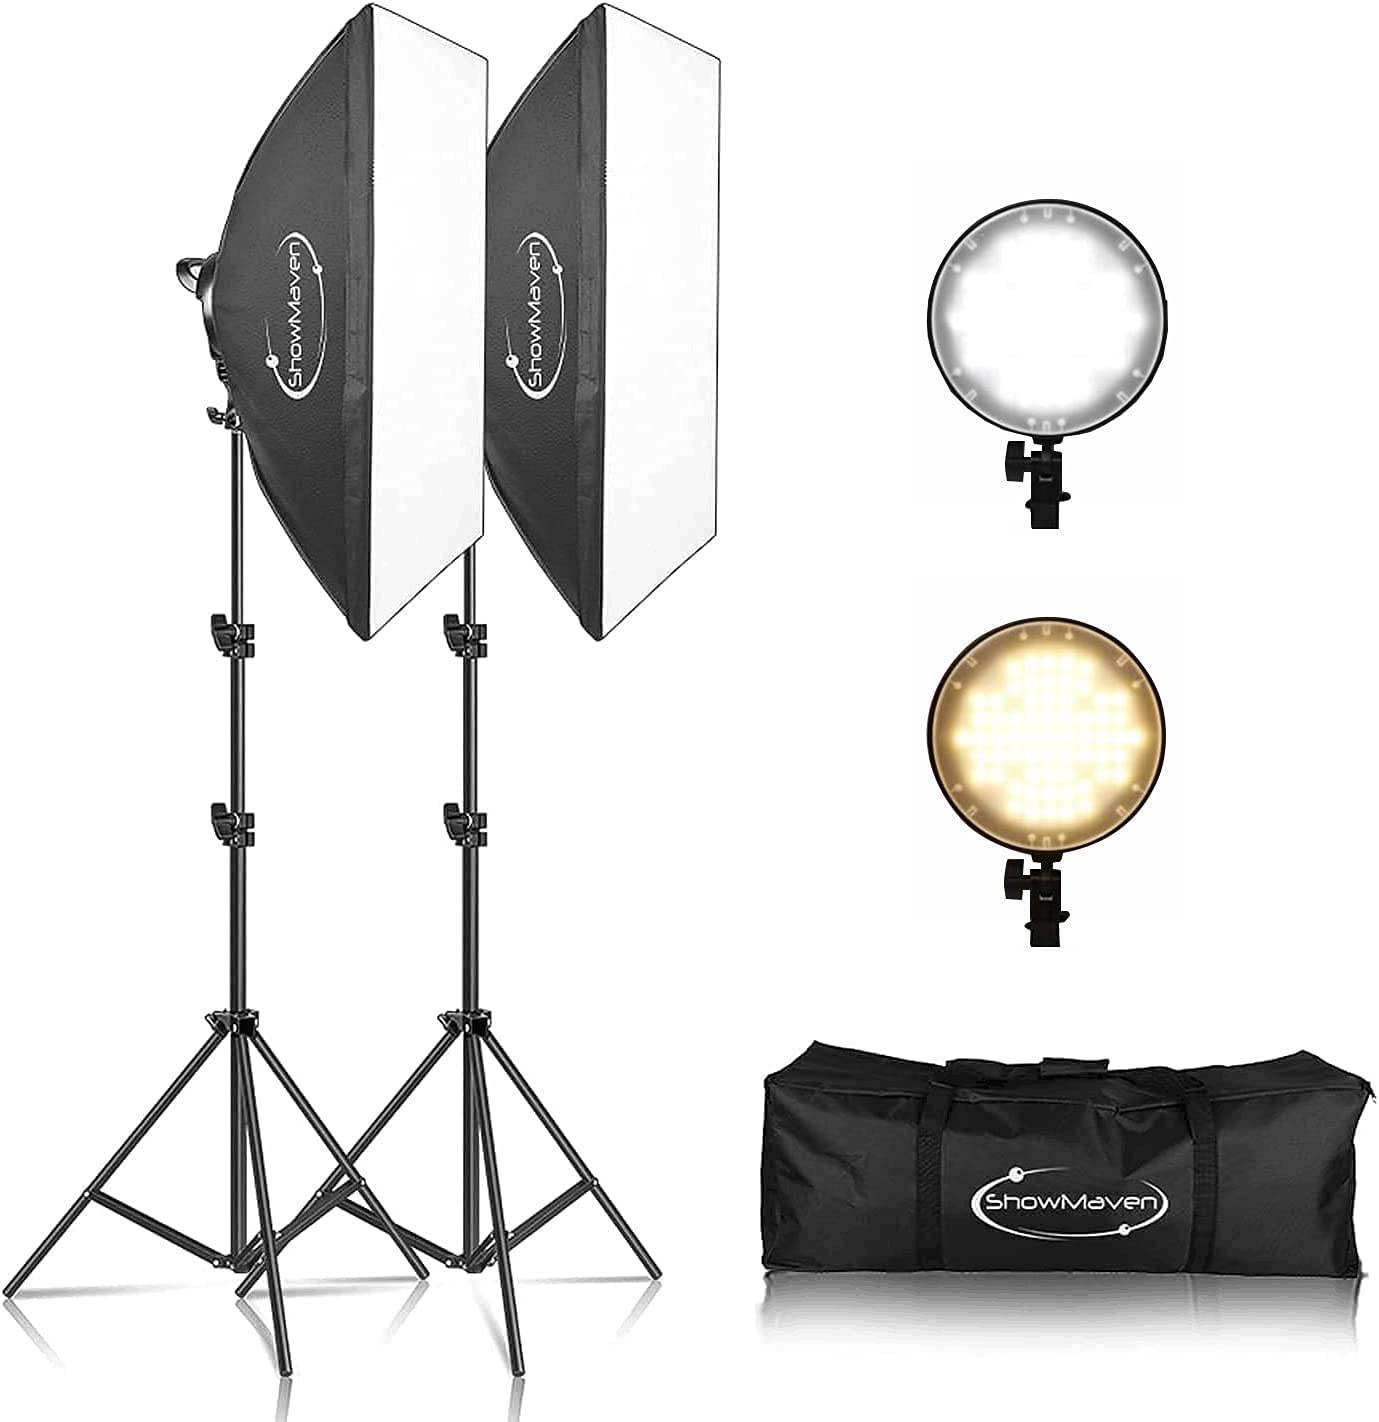 ShowMaven LED Softbox Challenge the lowest Max 68% OFF price of Japan Lighting Kit 20x28 Studio inches